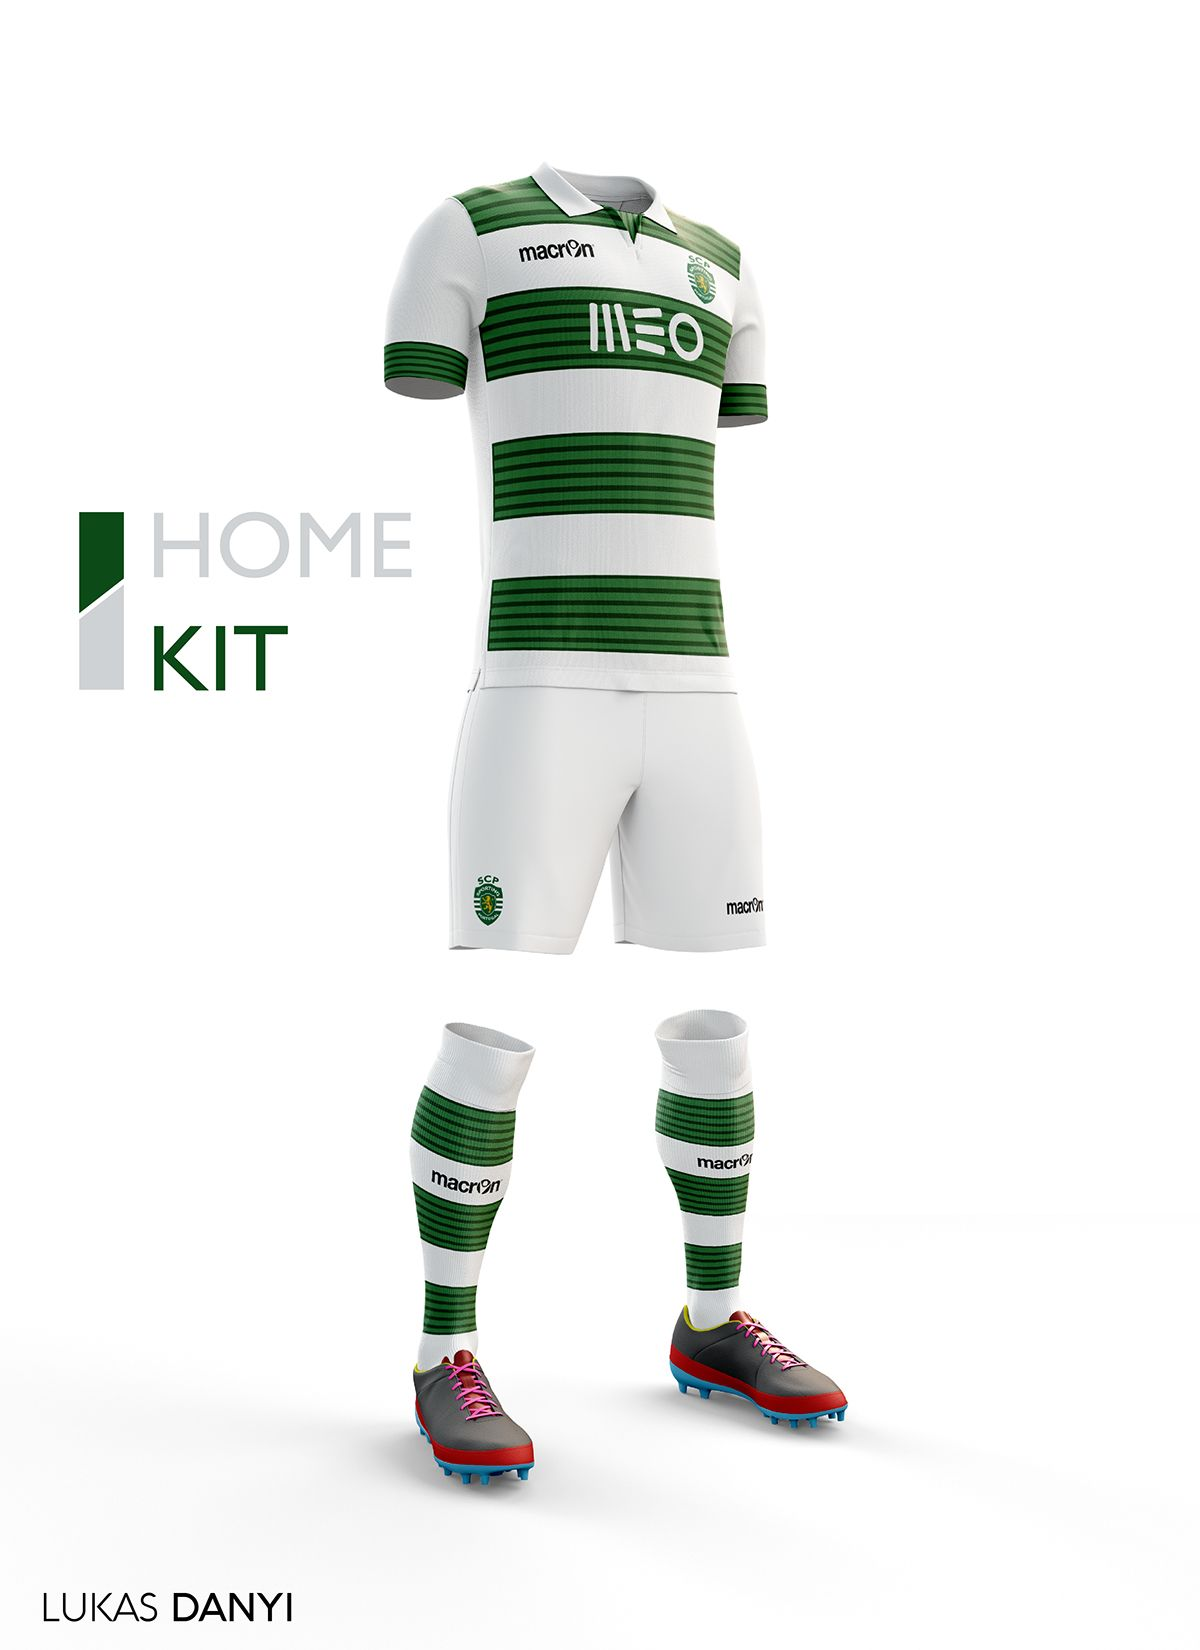 60c4b4032e I designed football kits for Sporting CP for the upcoming season 16/17.